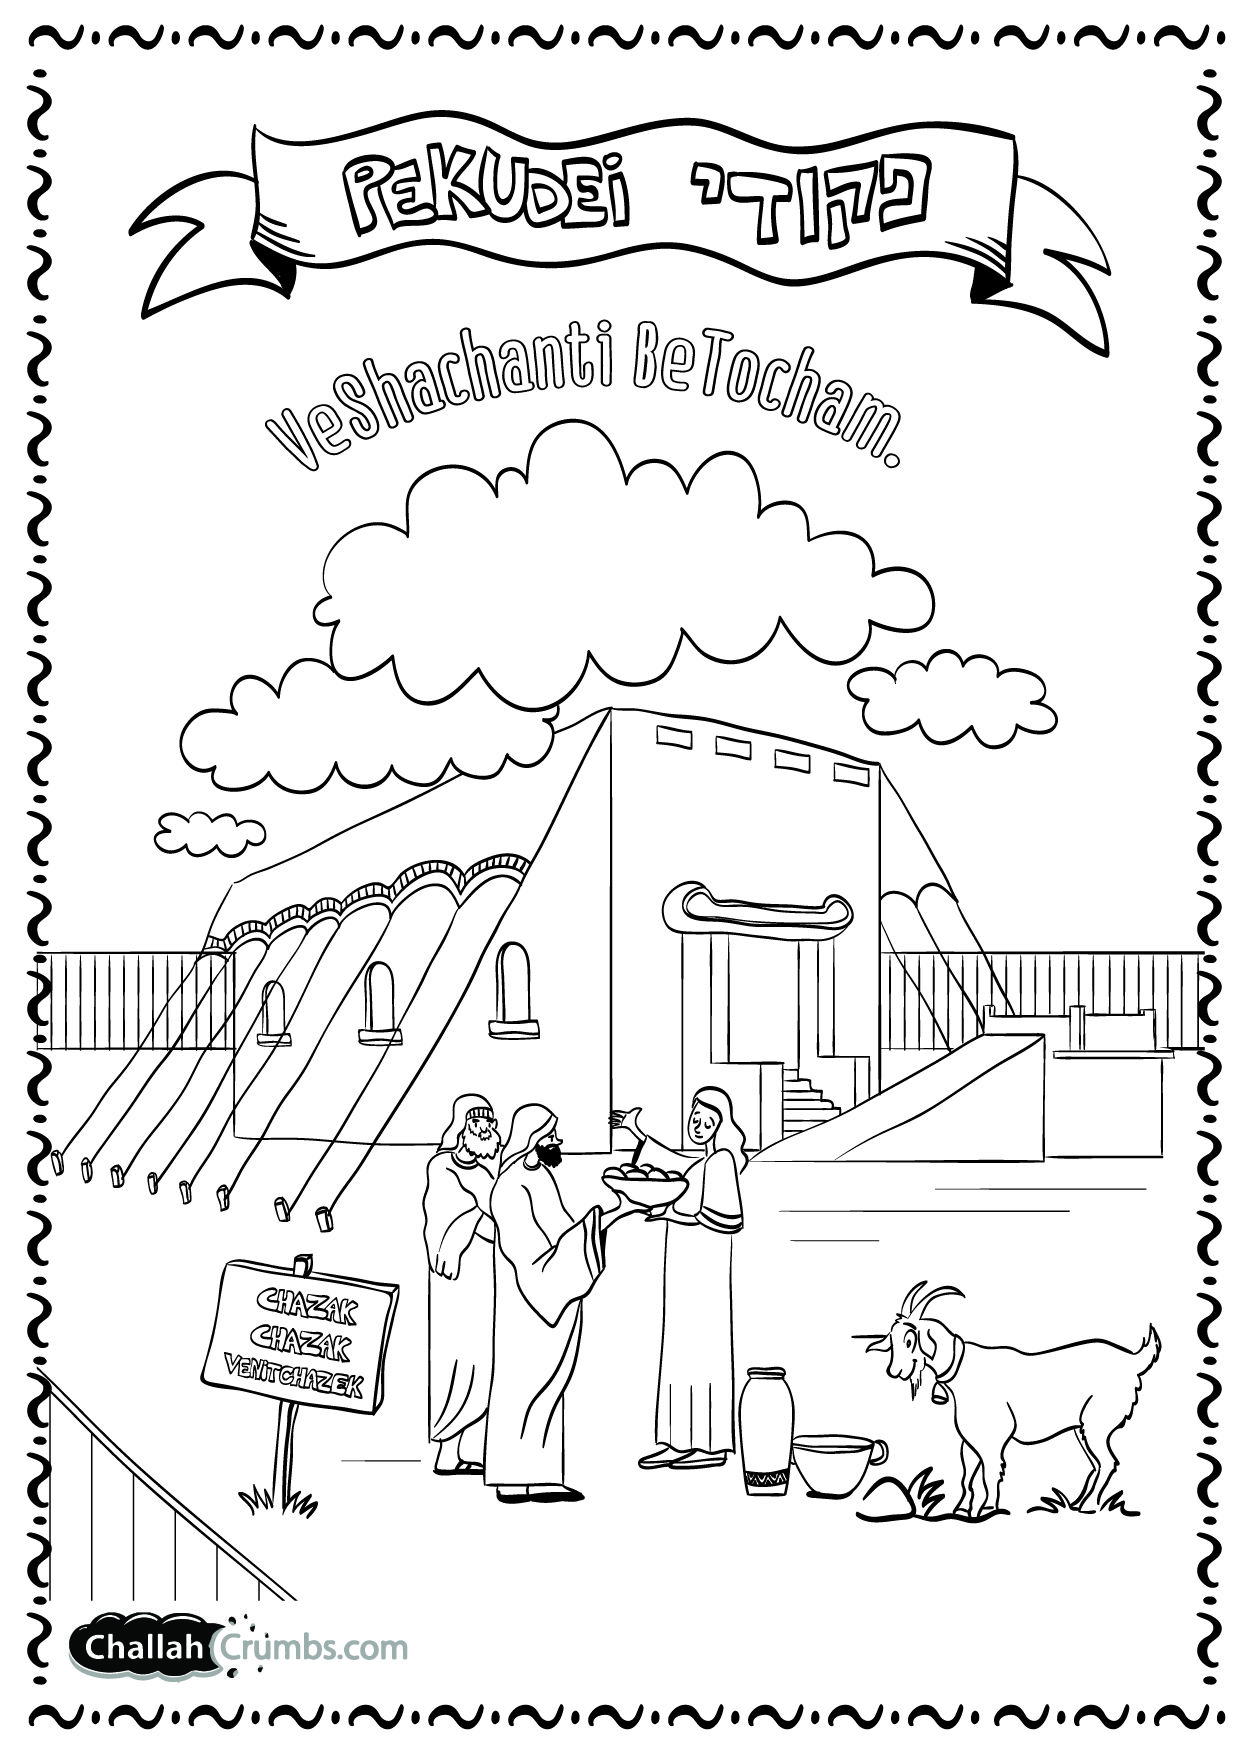 Image Result For Tabernacle Printable Pictures Coloring Pages The Tabernacle Bible School